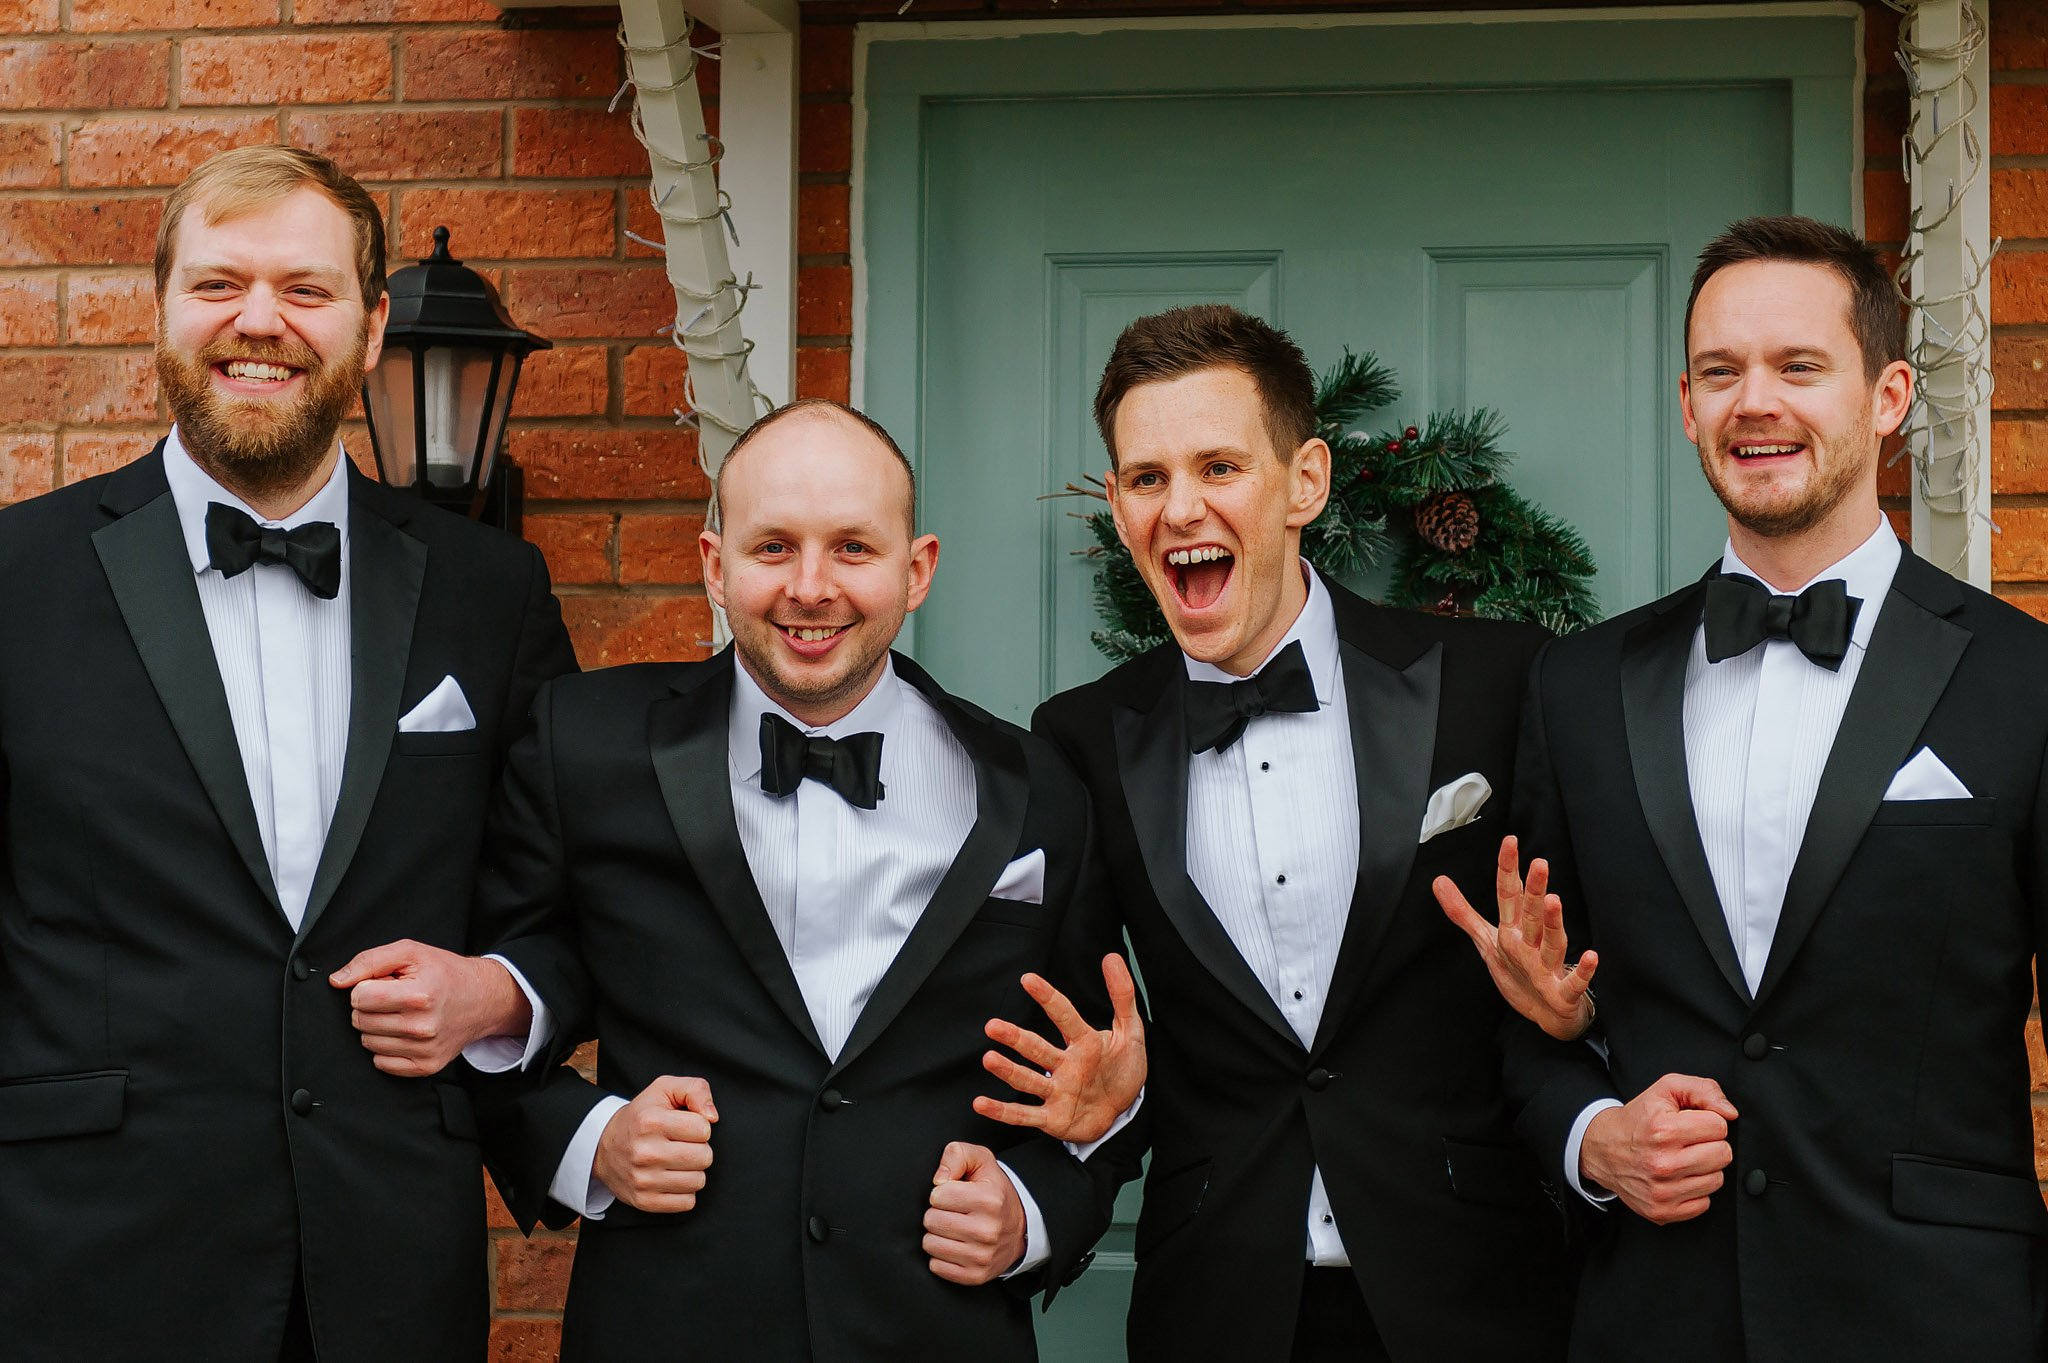 coombe abbey wedding coventry 22 - Coombe Abbey wedding in Coventry, Warwickshire - Sam + Matt